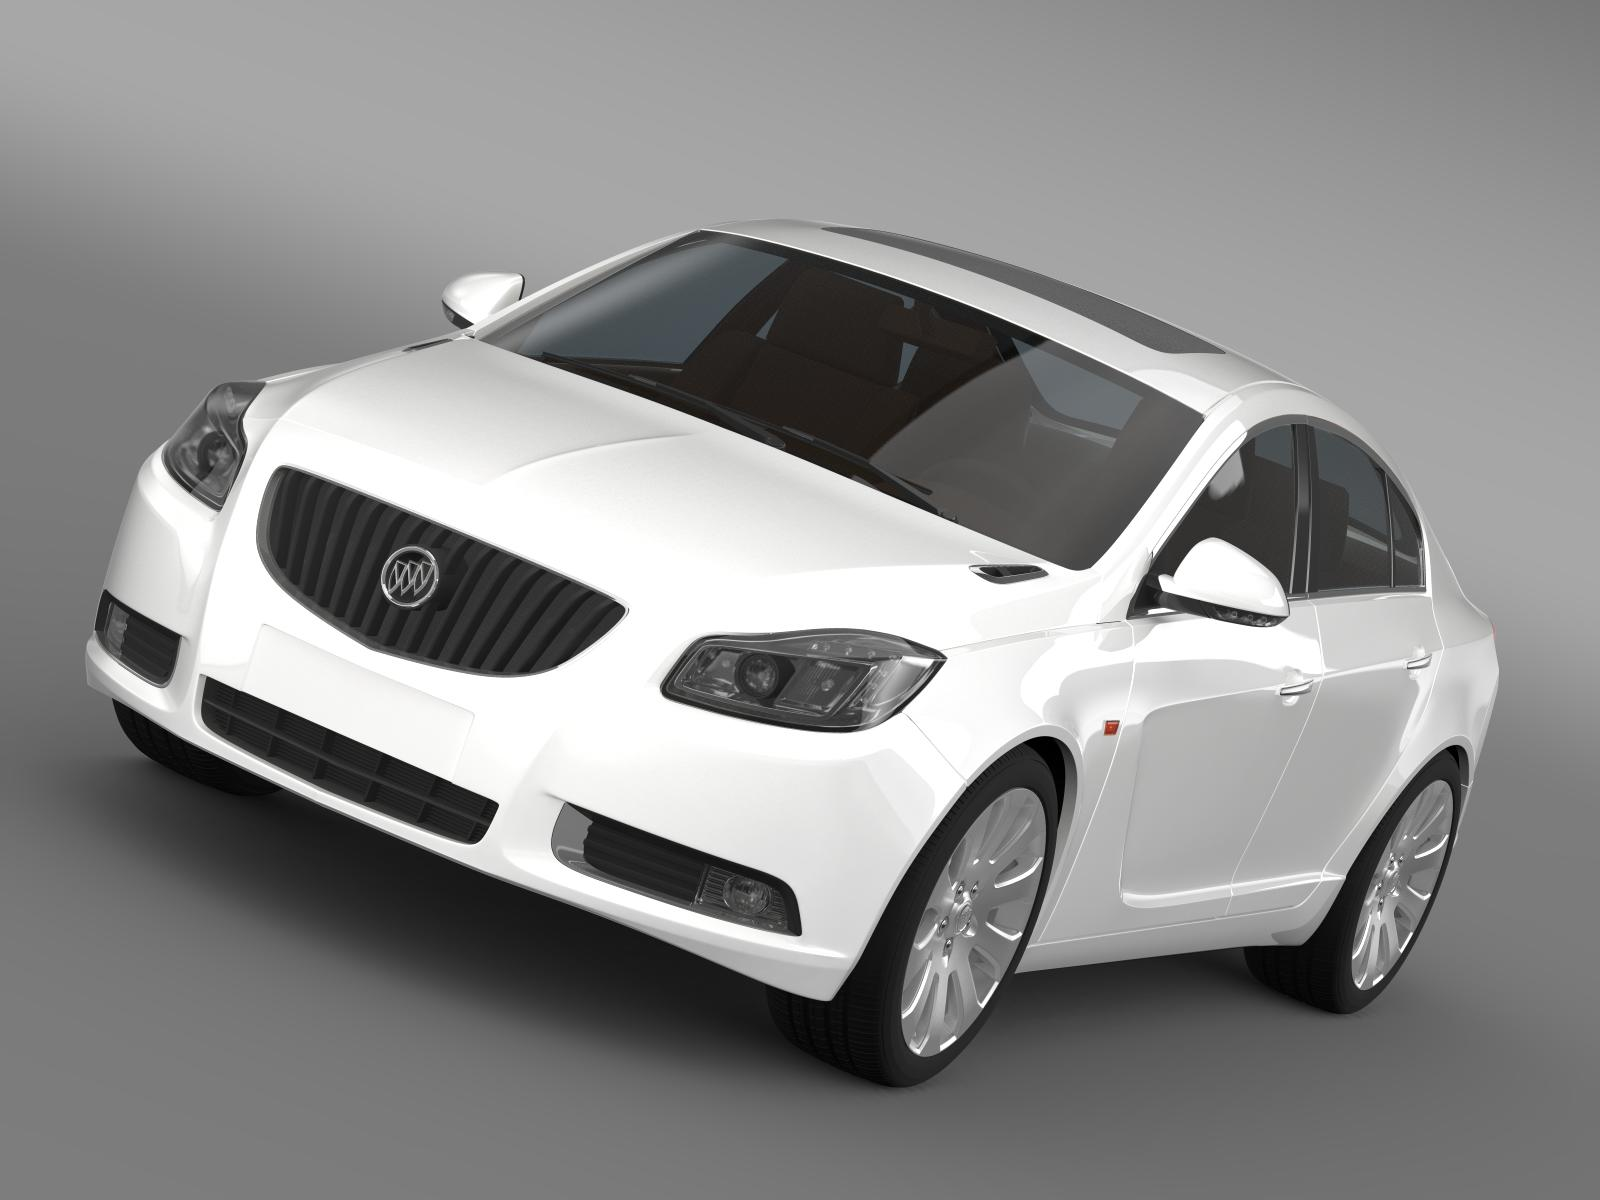 buick regal flexfuel 2011-2013 3d model 3ds max fbx c4d lwo ma mb hrc xsi obj 165444